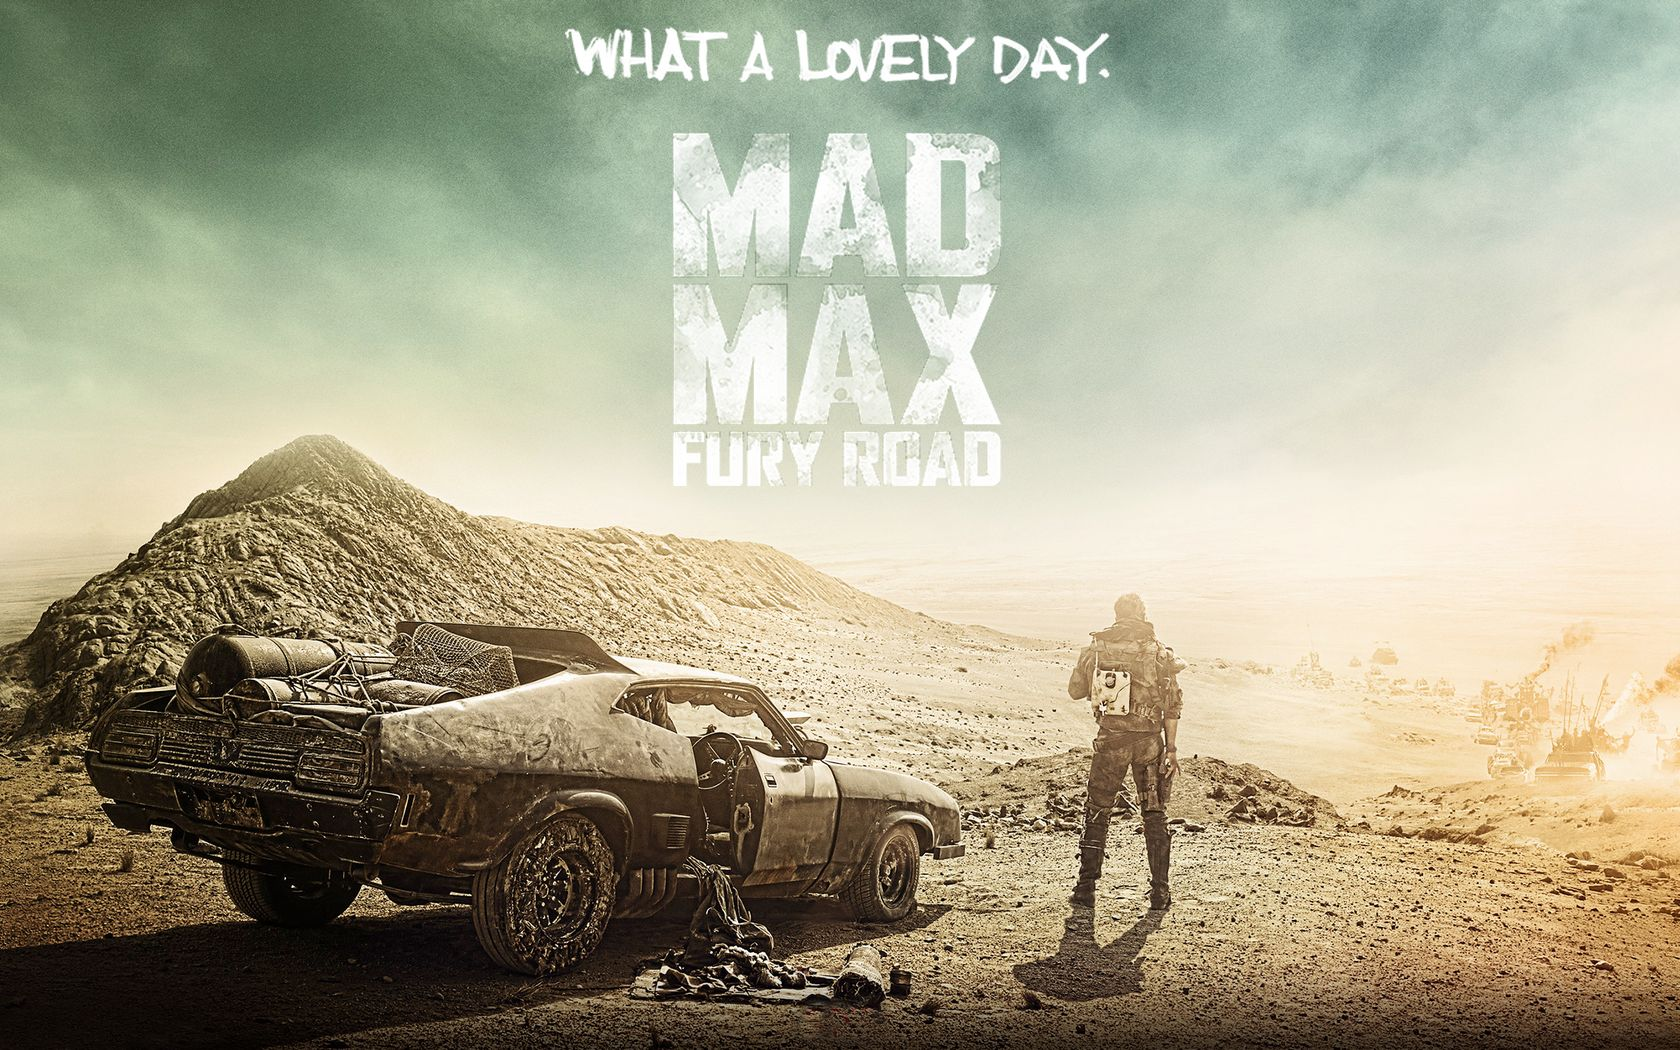 Mad-Max-Fury-Road-lovely-day.jpg